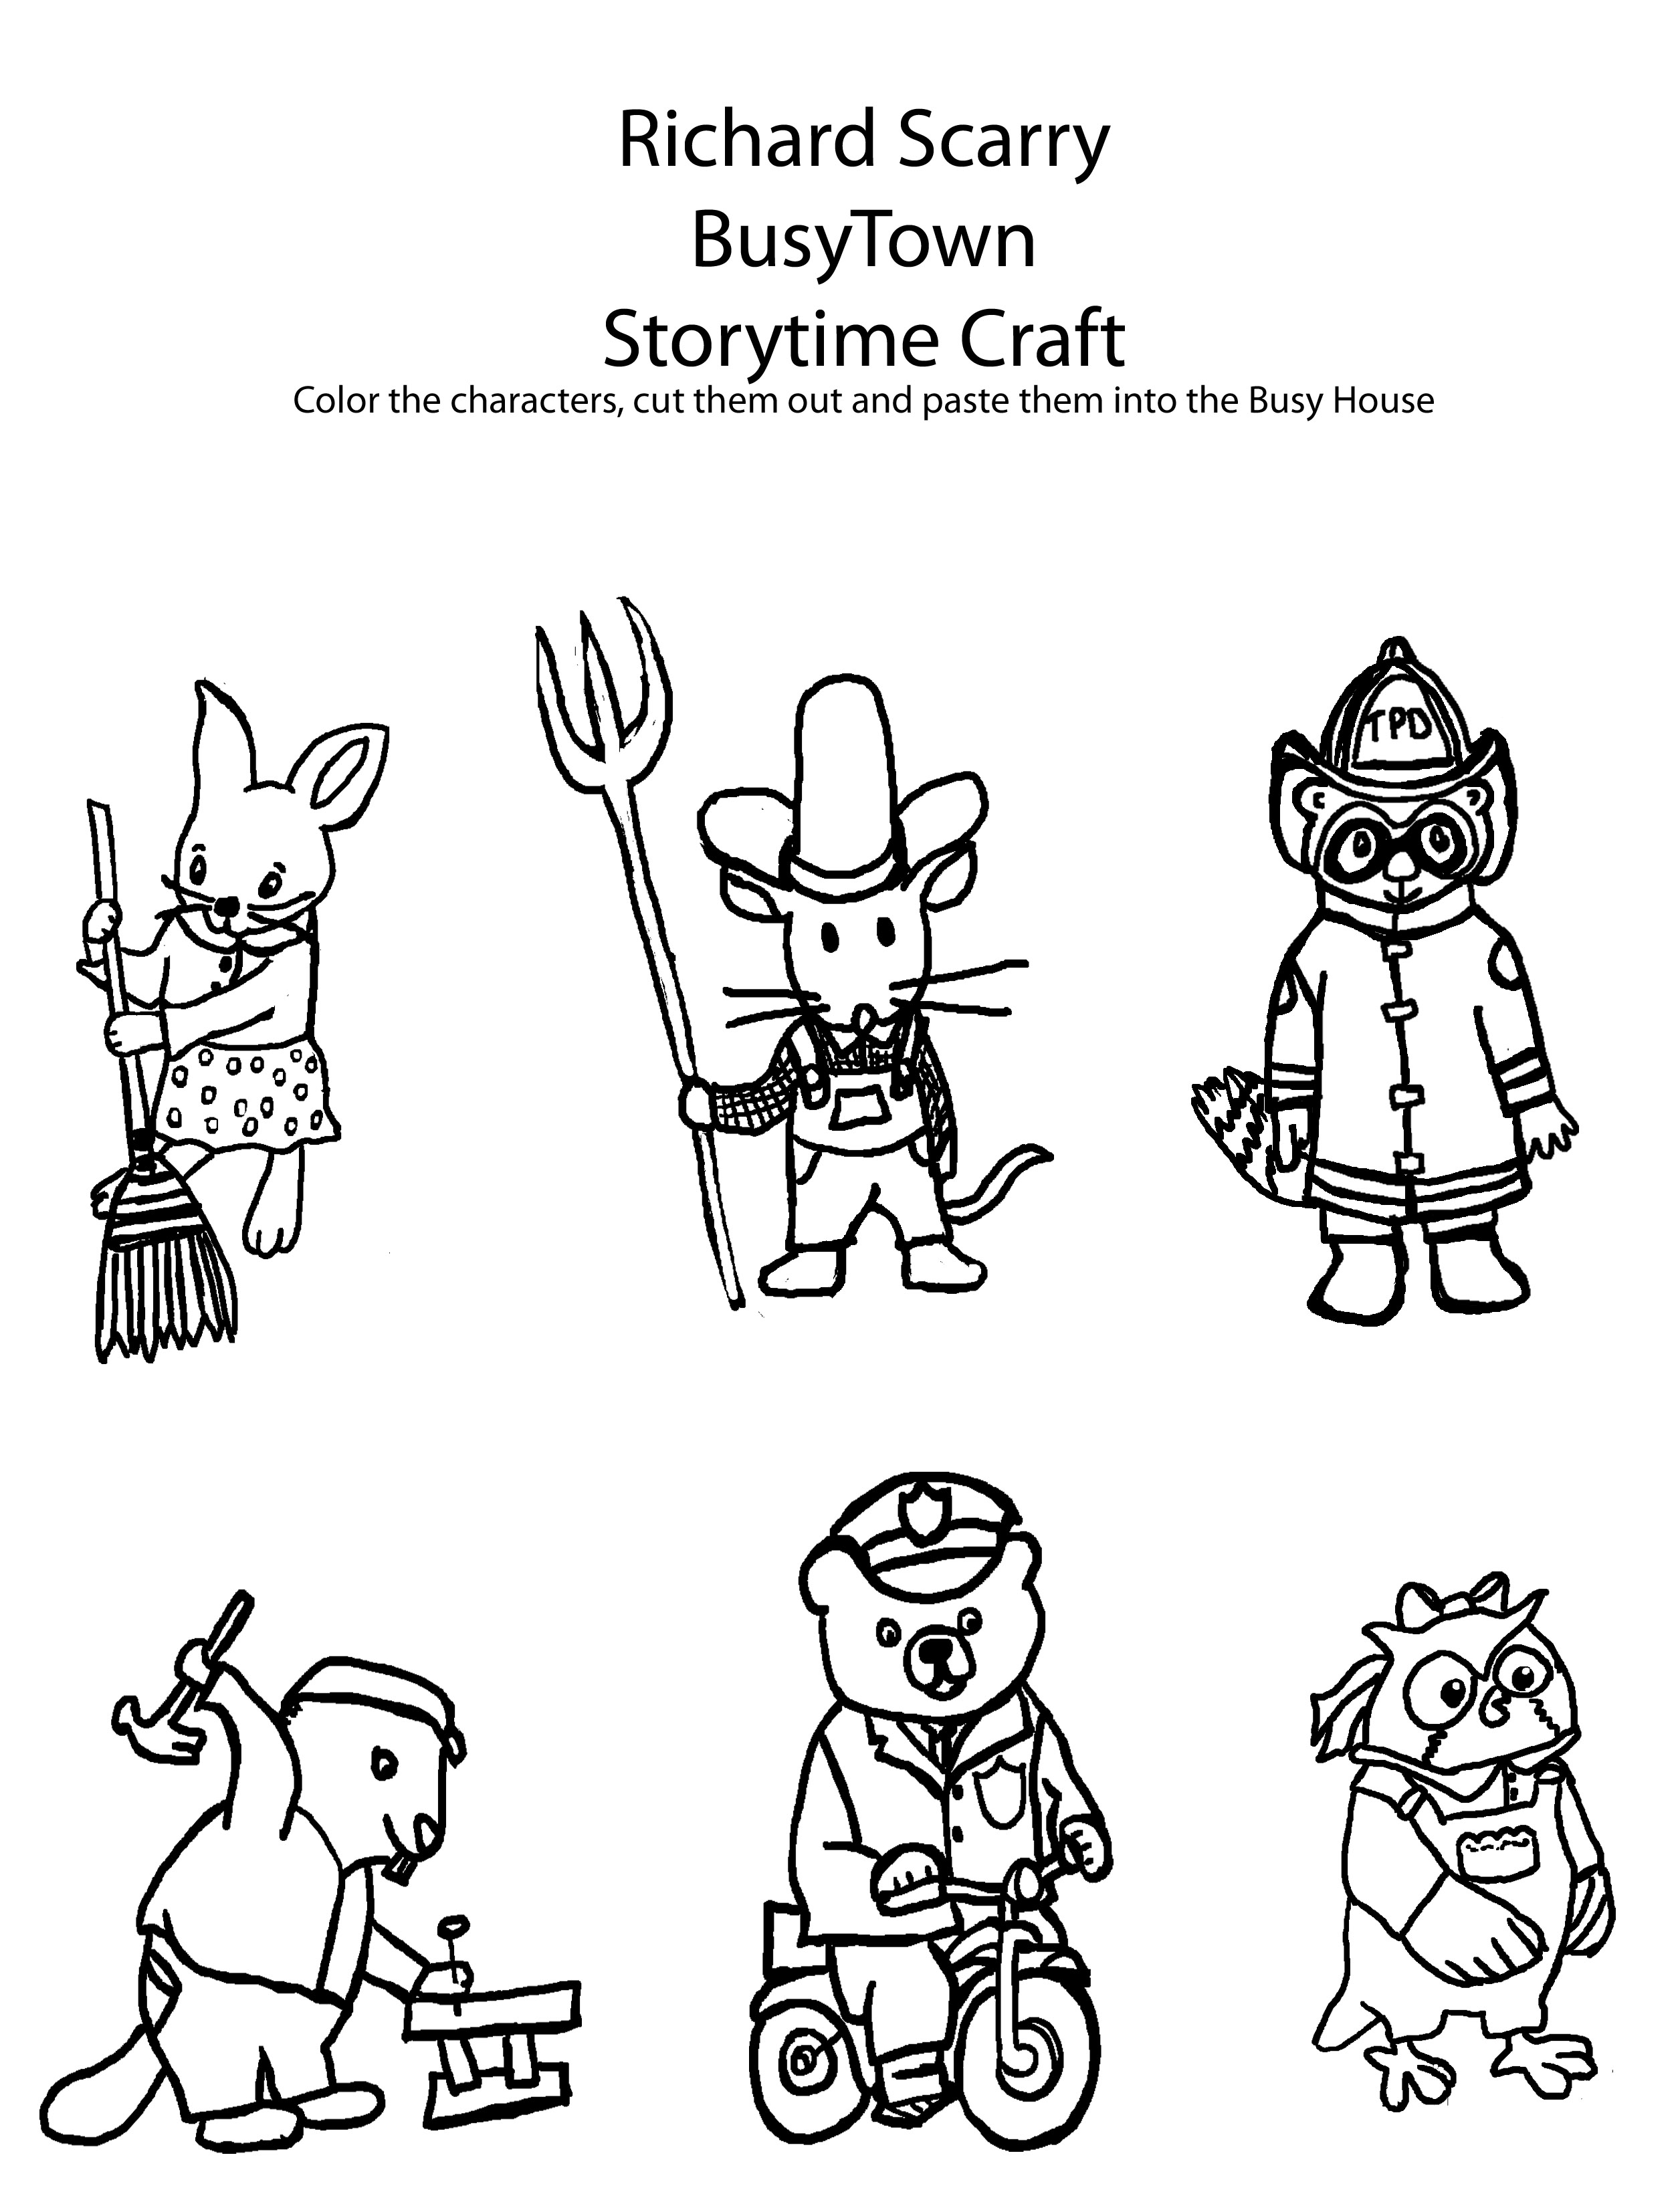 richard scarry preschool coloring pages - photo#7